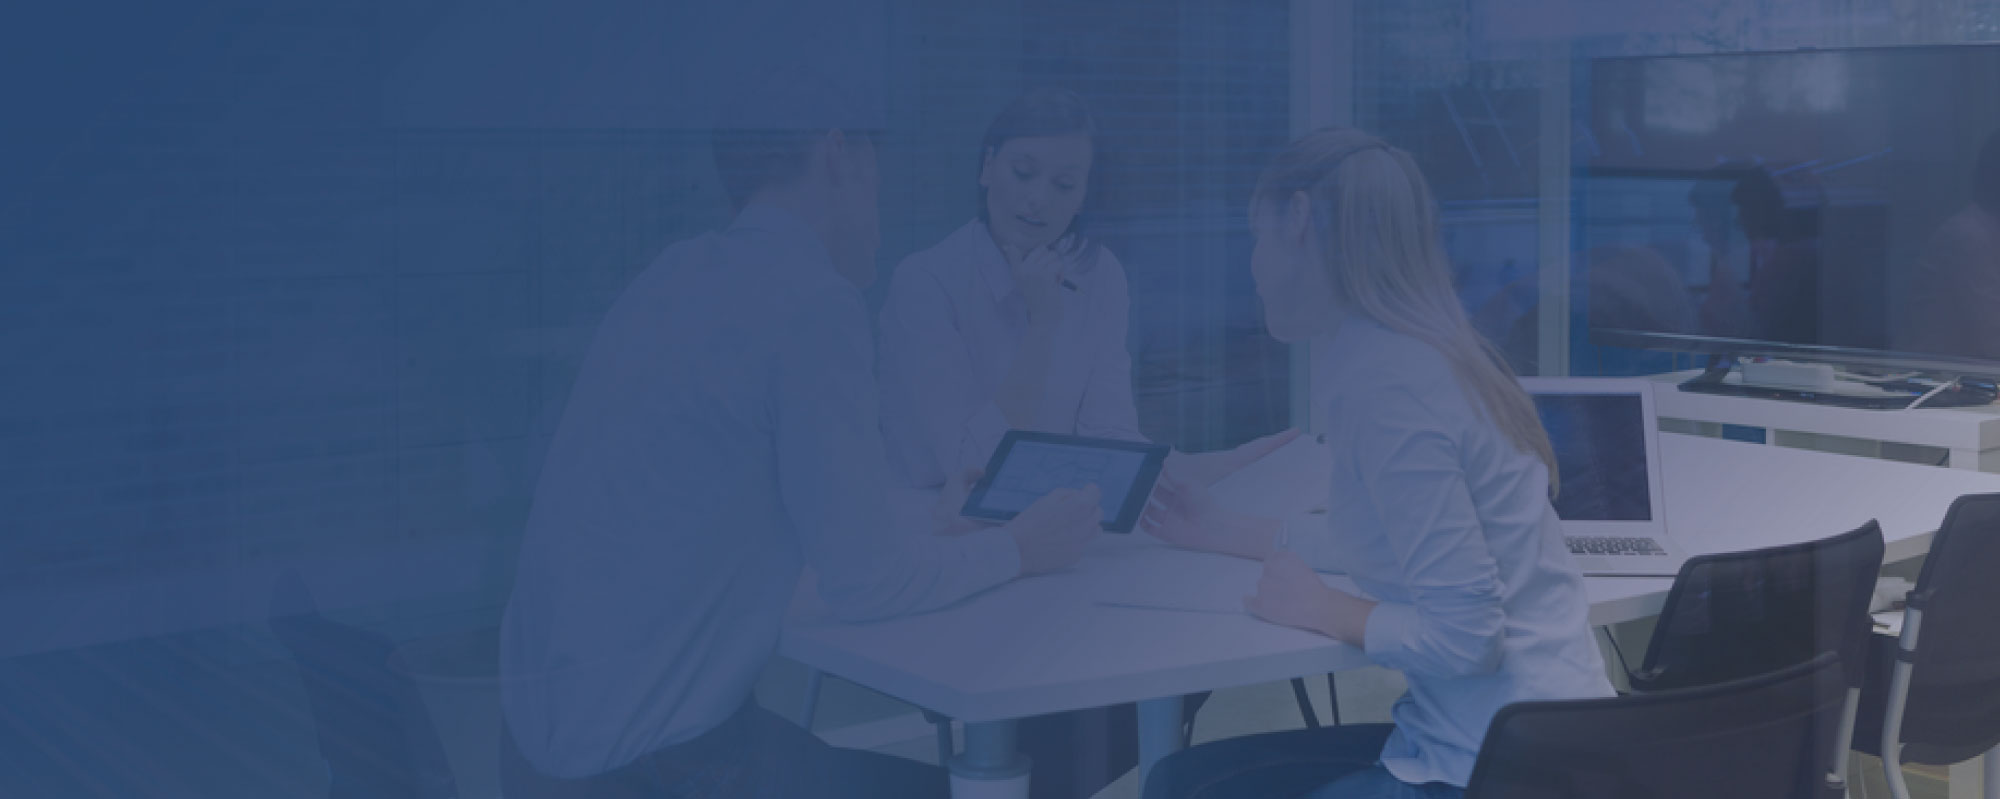 Webinar on Aligning ServiceNow Service Management with ITIL4